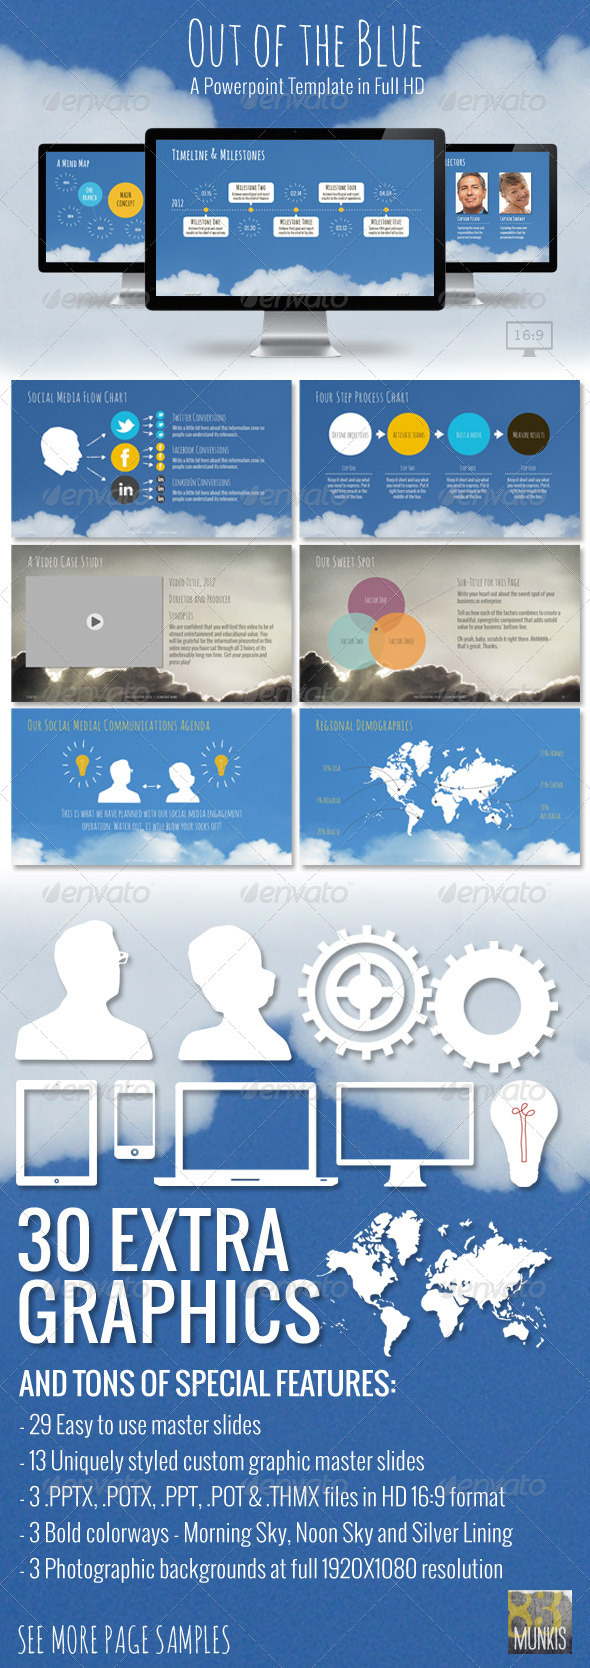 Out of the Blue Powerpoint Presentation Template - Powerpoint Templates Presentation Templates